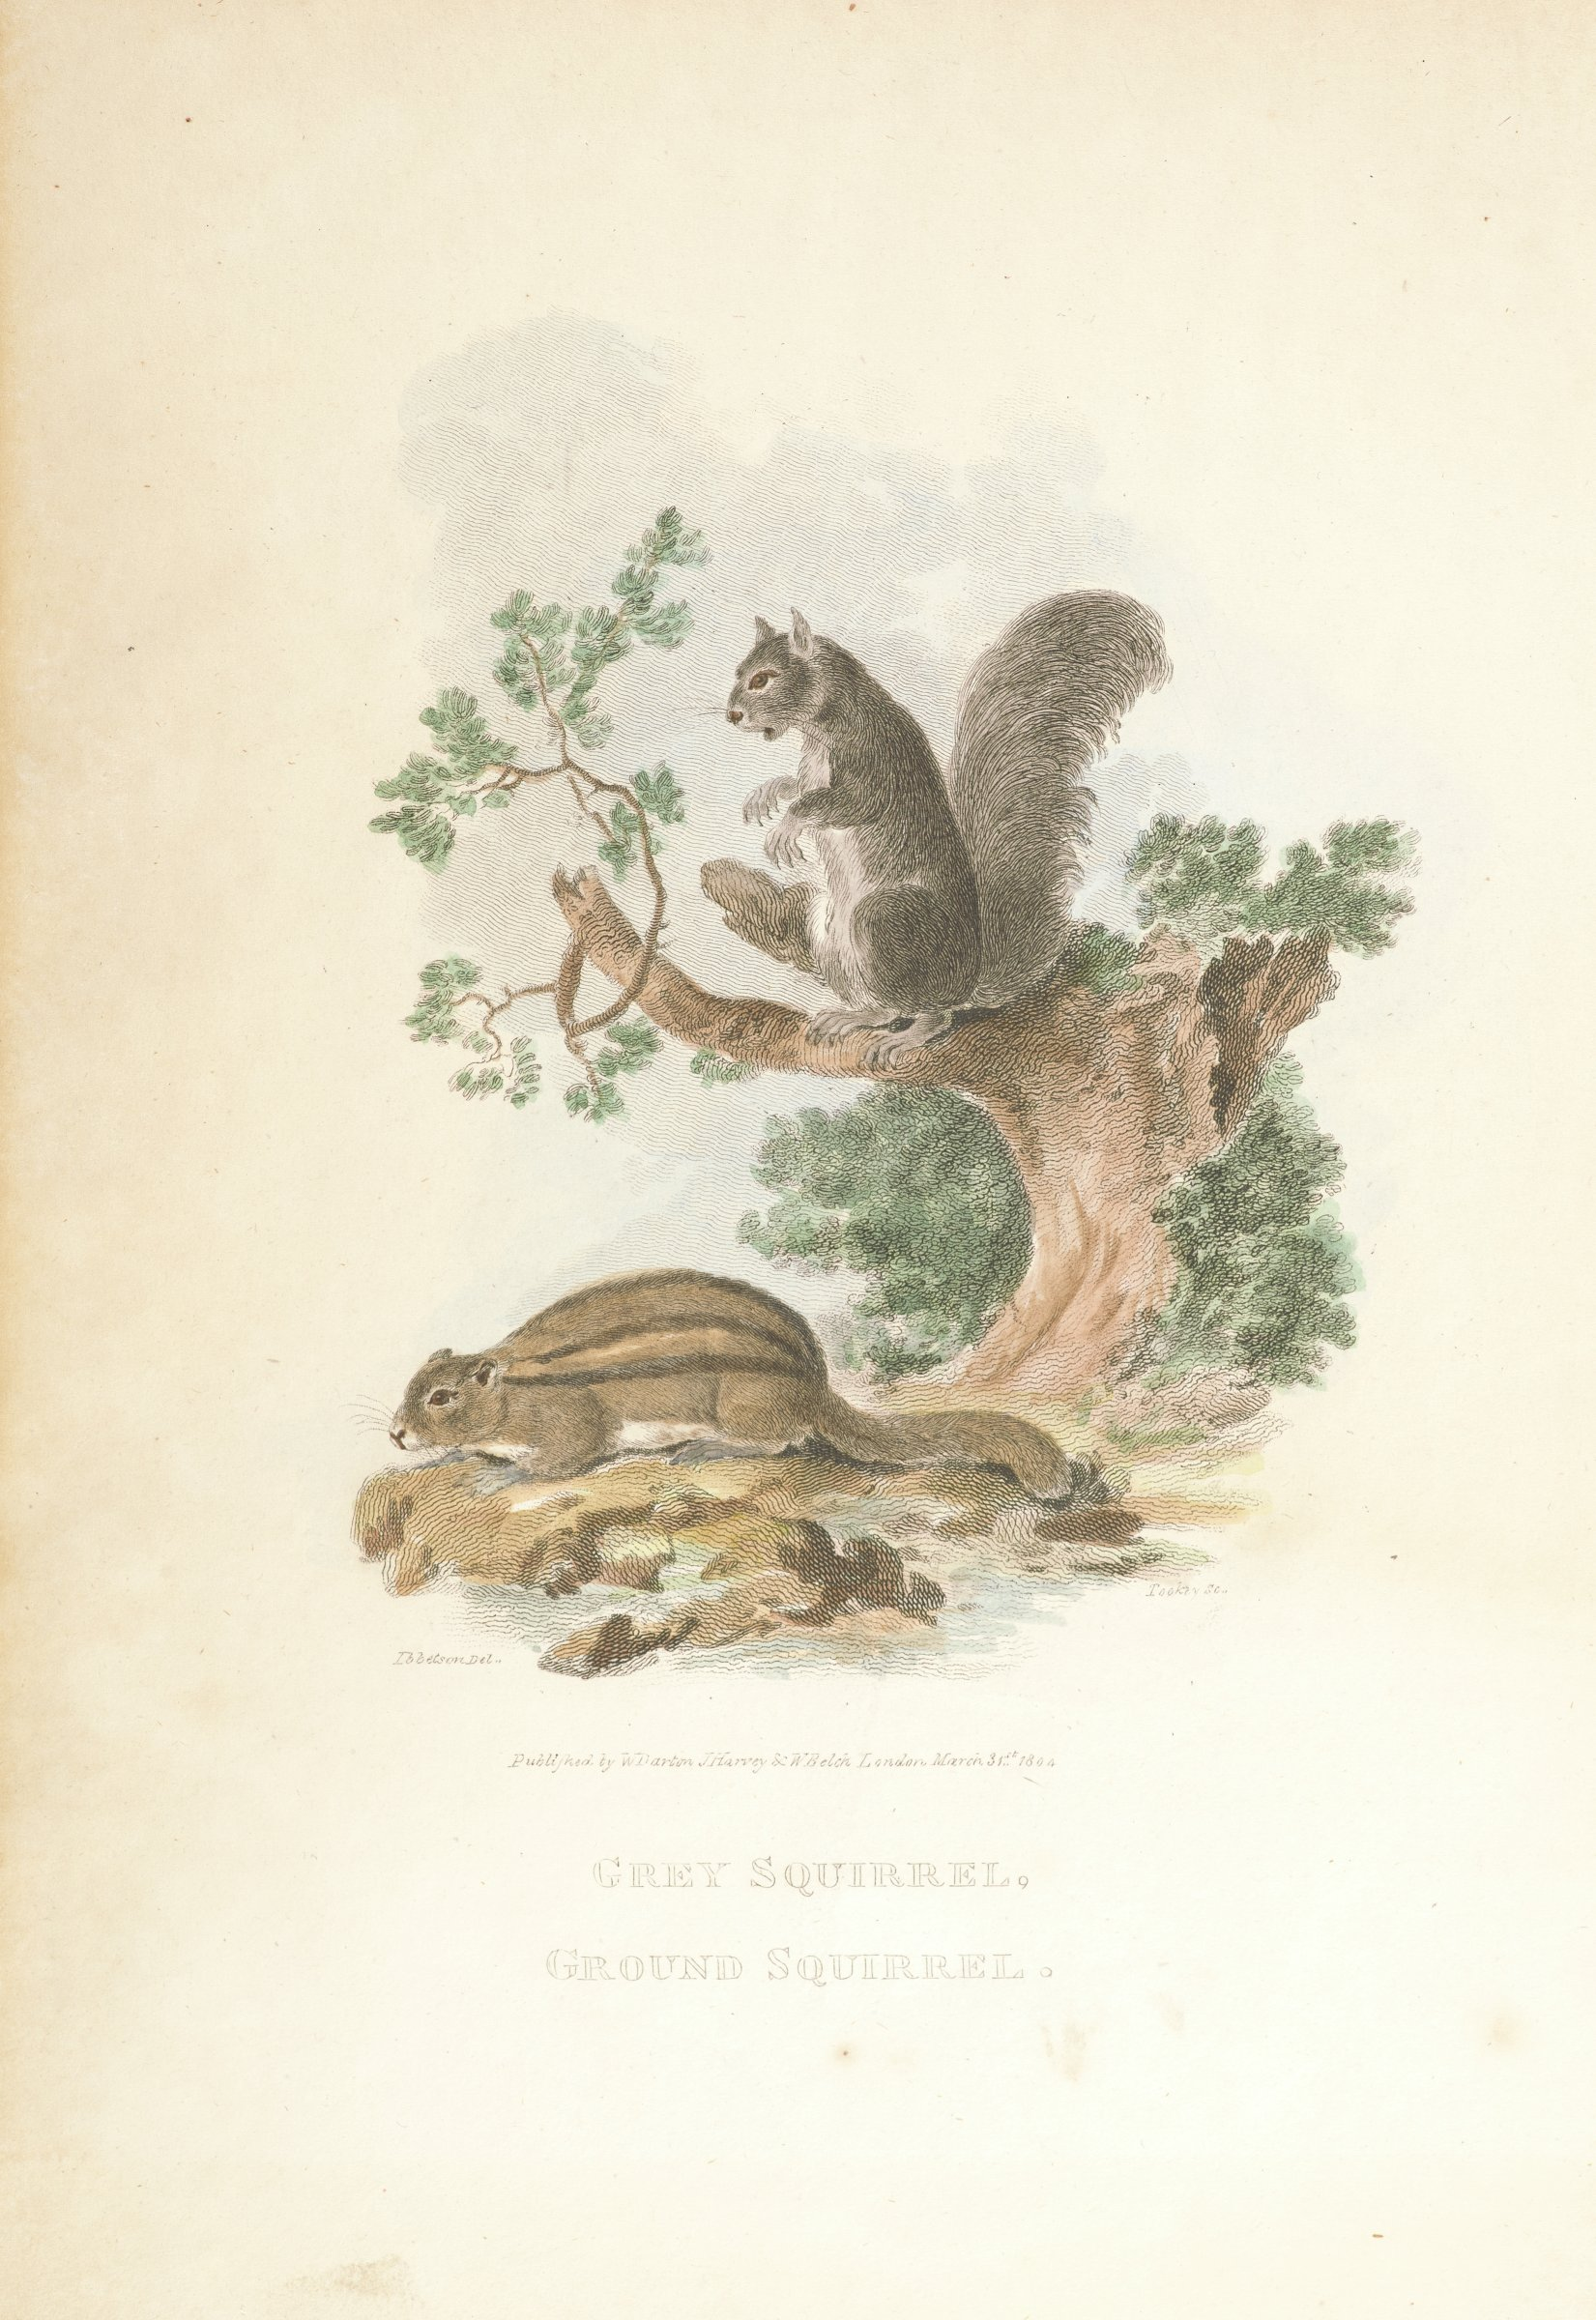 Grey Squirrel / Ground Squirrel, from John A. Church's A Cabinet of Quadrupeds, After Julius-Caesar Ibbetson, Engraved by James Tookey, hand-colored engraving